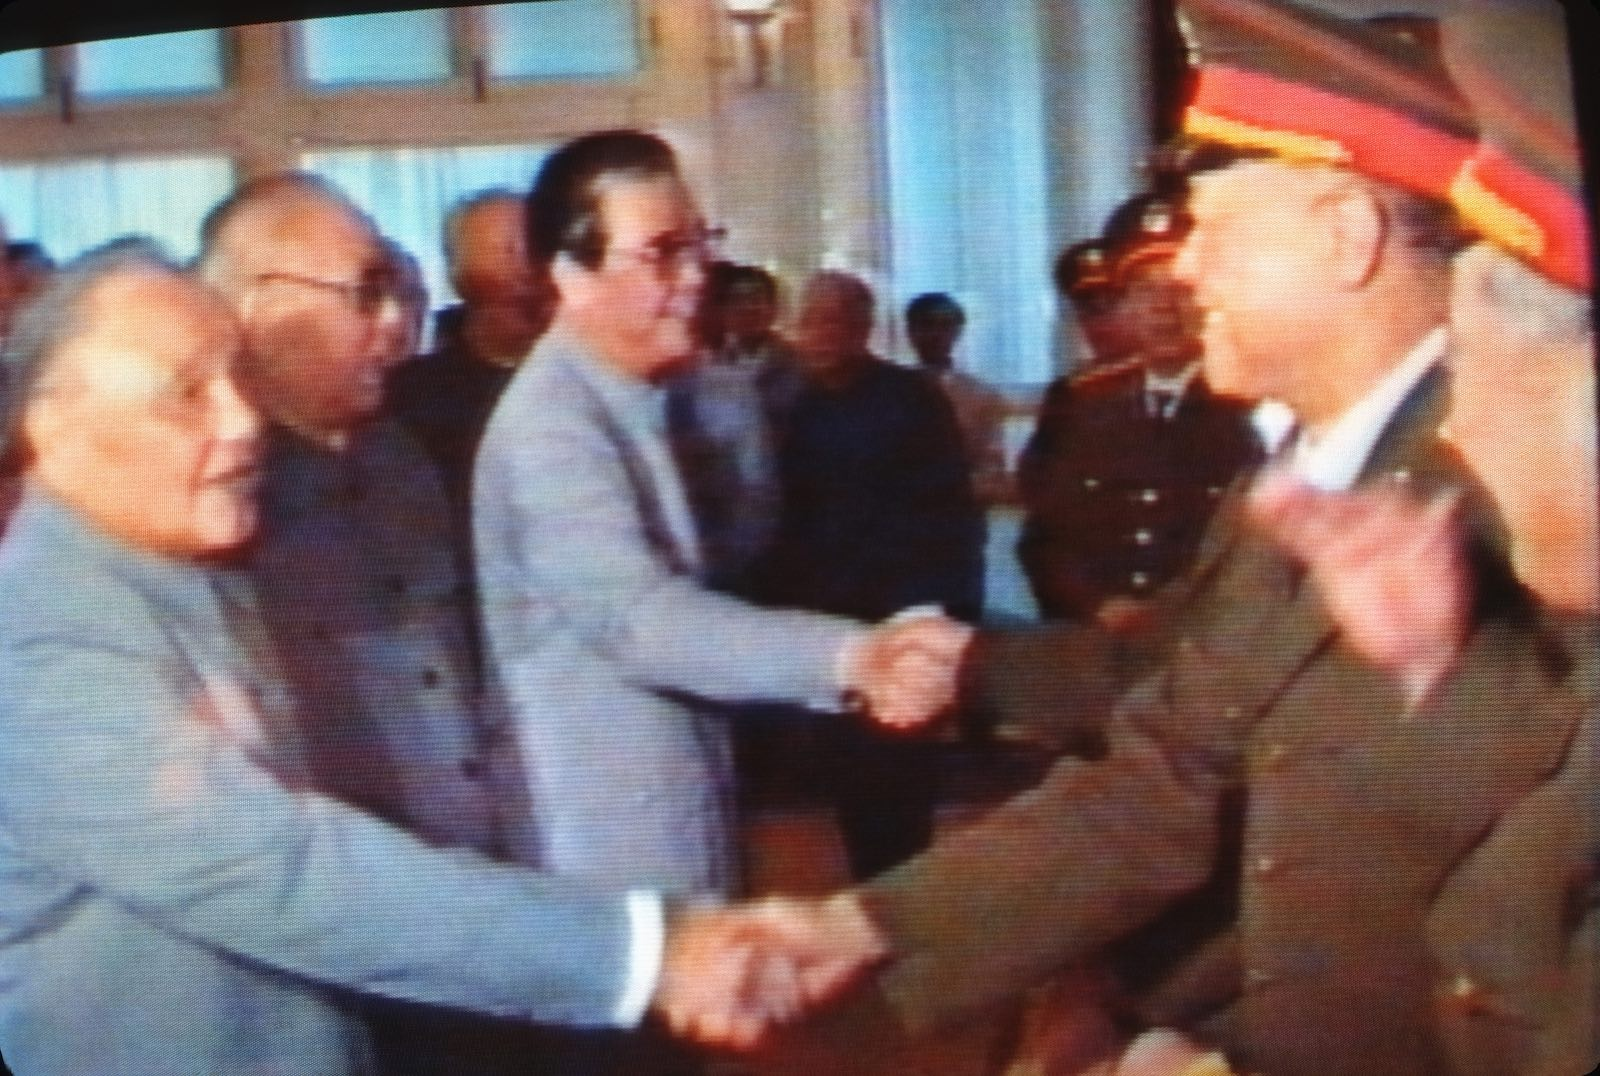 Broadcast from Chinese State Television in 1989 showing Deng Xiaoping congratulating soldiers for putting an end to the demonstrations in Tiananmen Square (Photo: Peter Charlesworth via Getty)